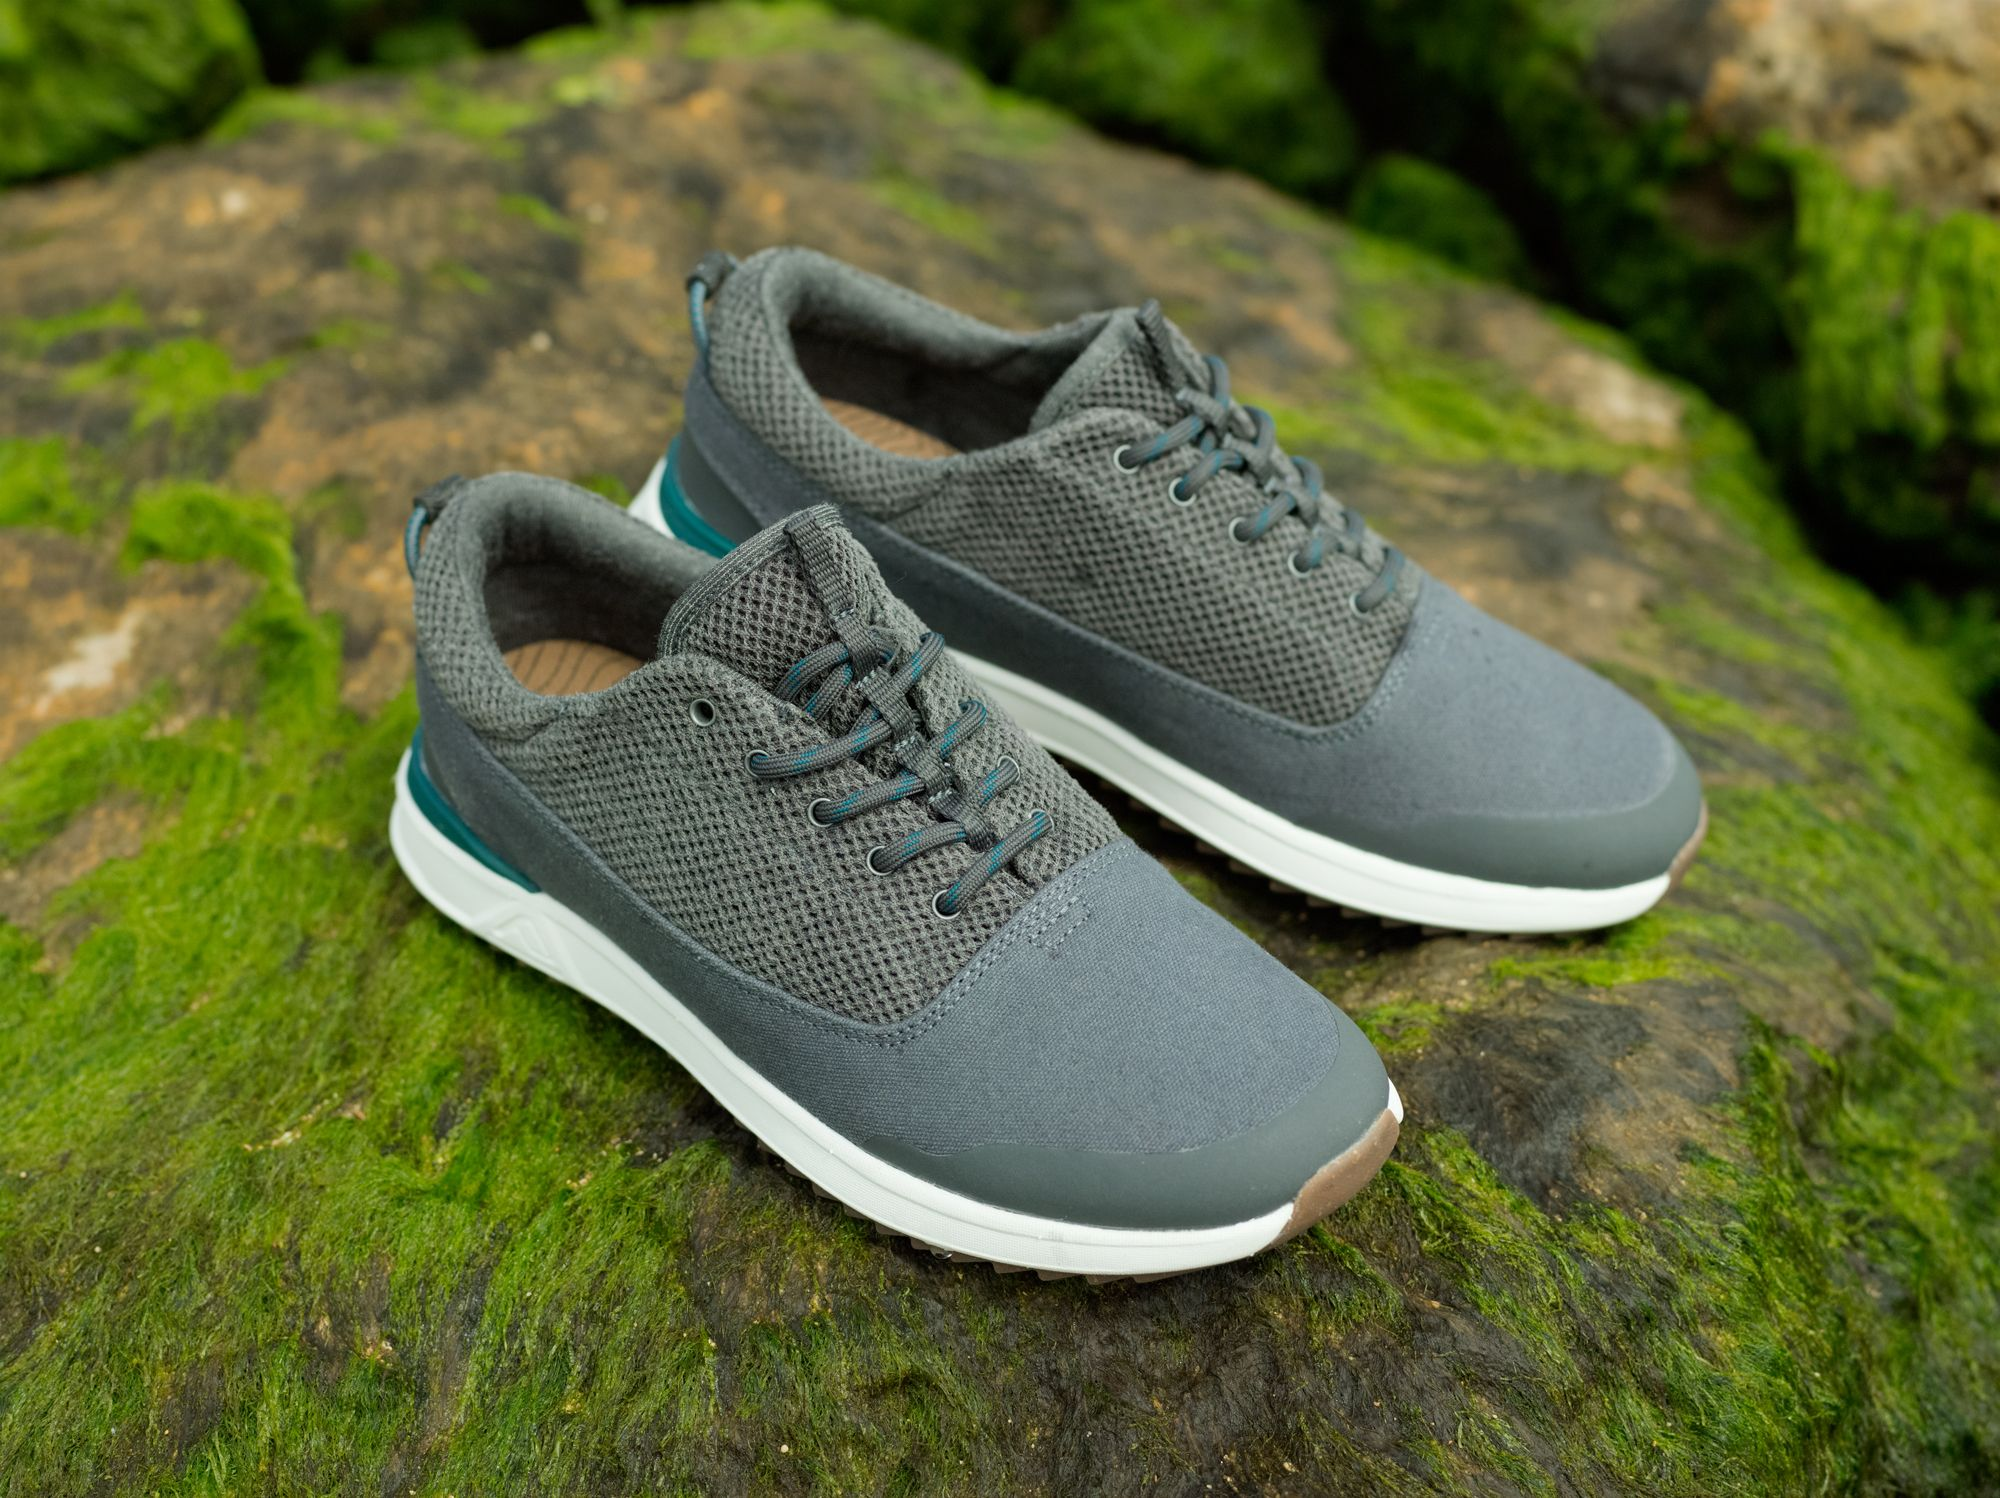 2017 Reef Rover Low XT Shoes | Reef Men's Shoes